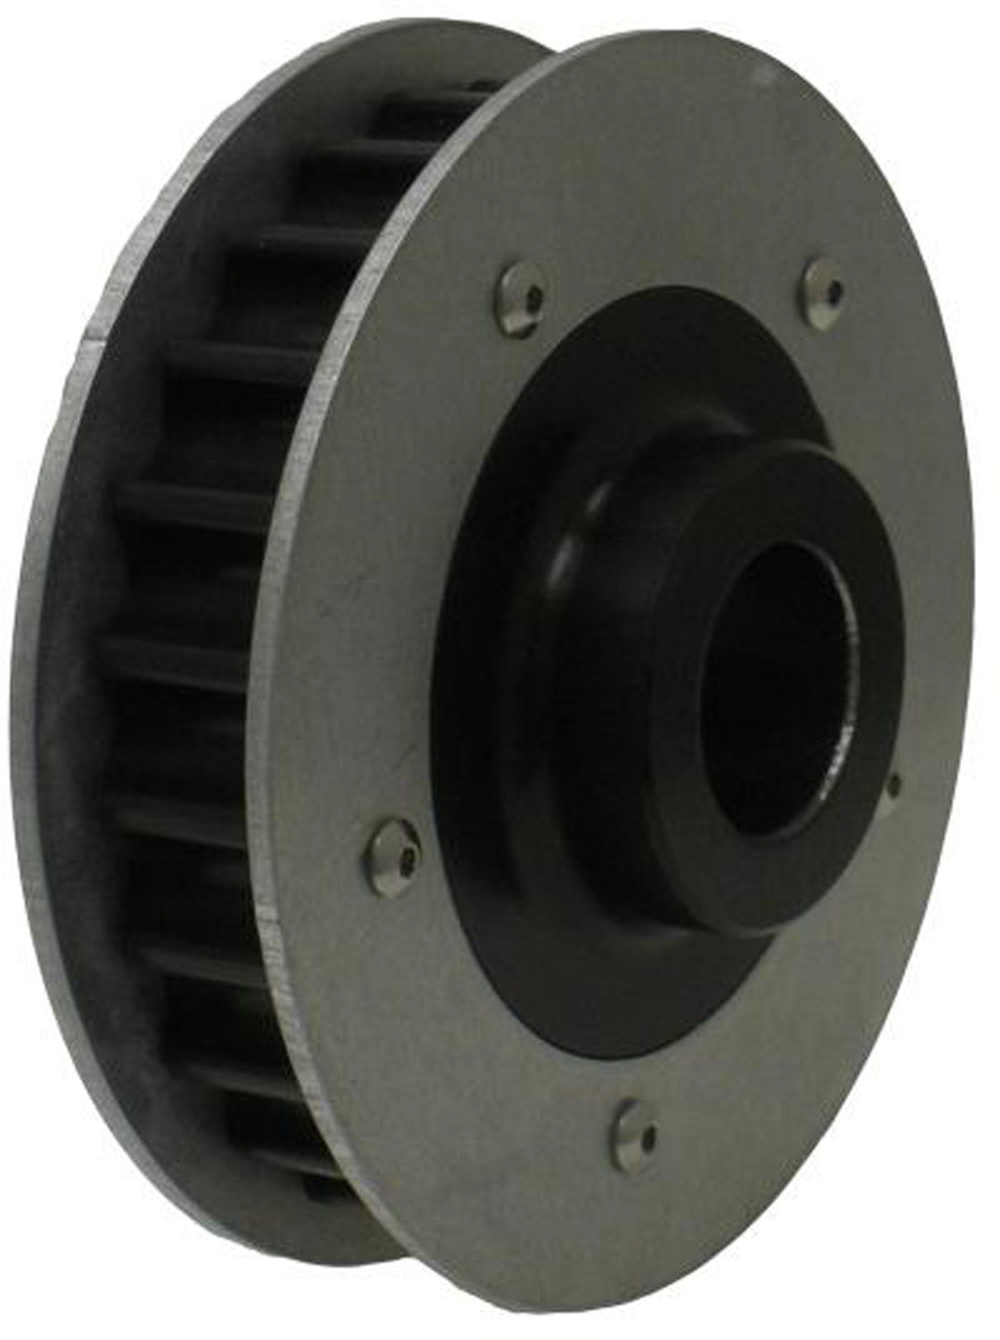 Krc Power Steering Pulley HTD 24 Tooth Denso Alt 10mm Wide